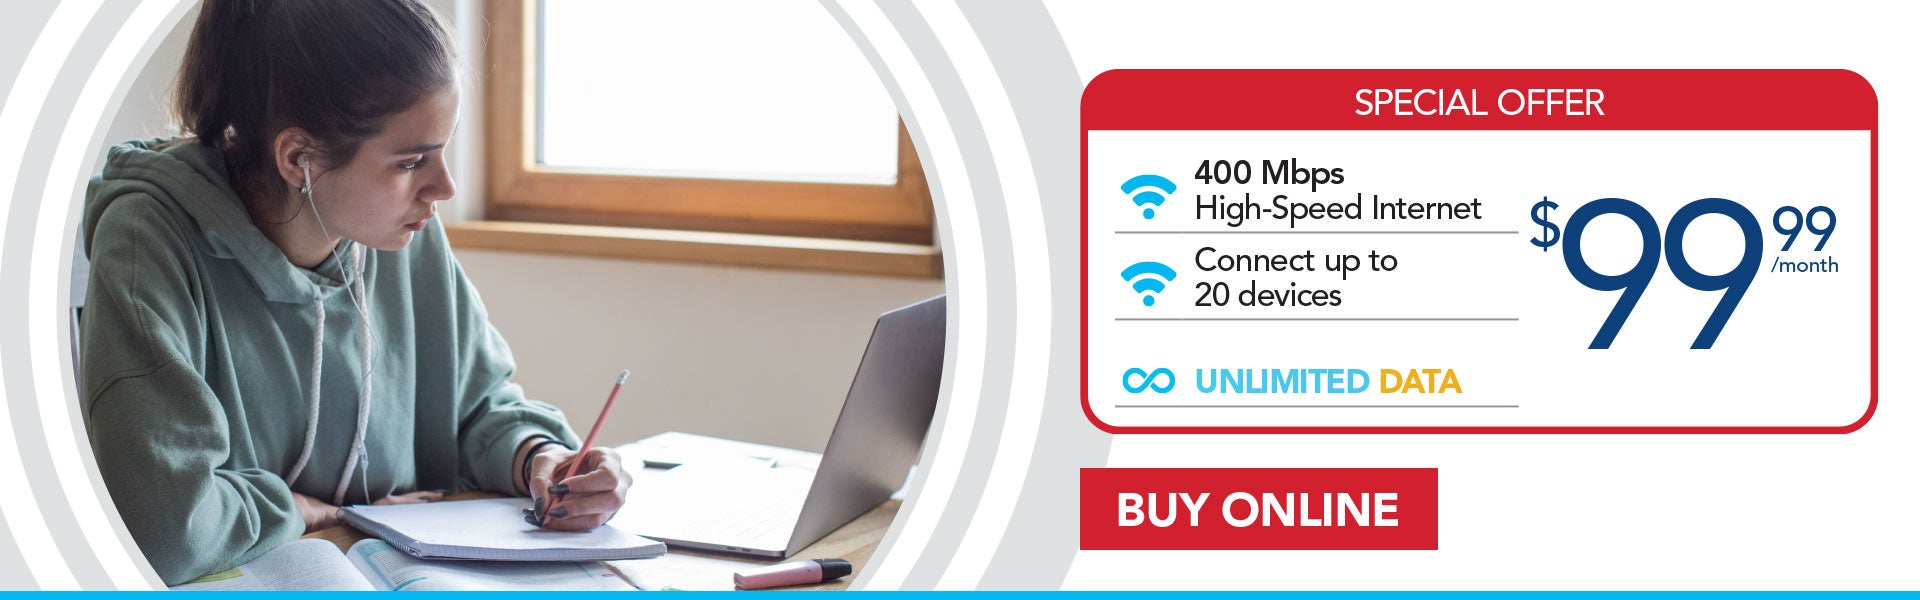 high-speed internet, internet provider